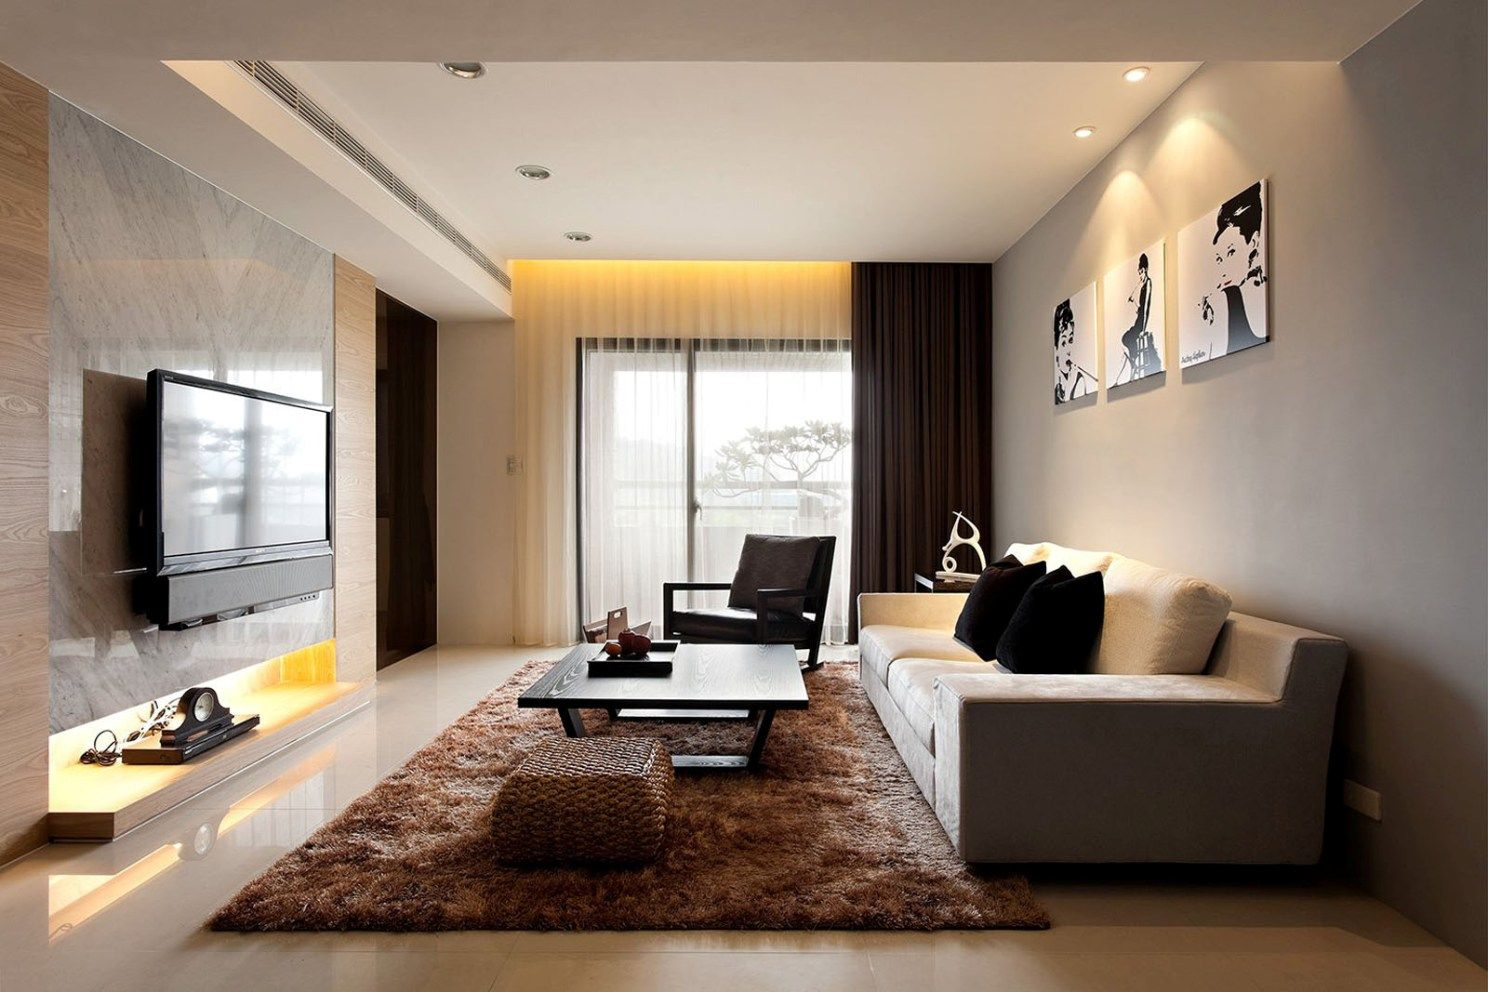 Home Design Modern Living Room Decor Black